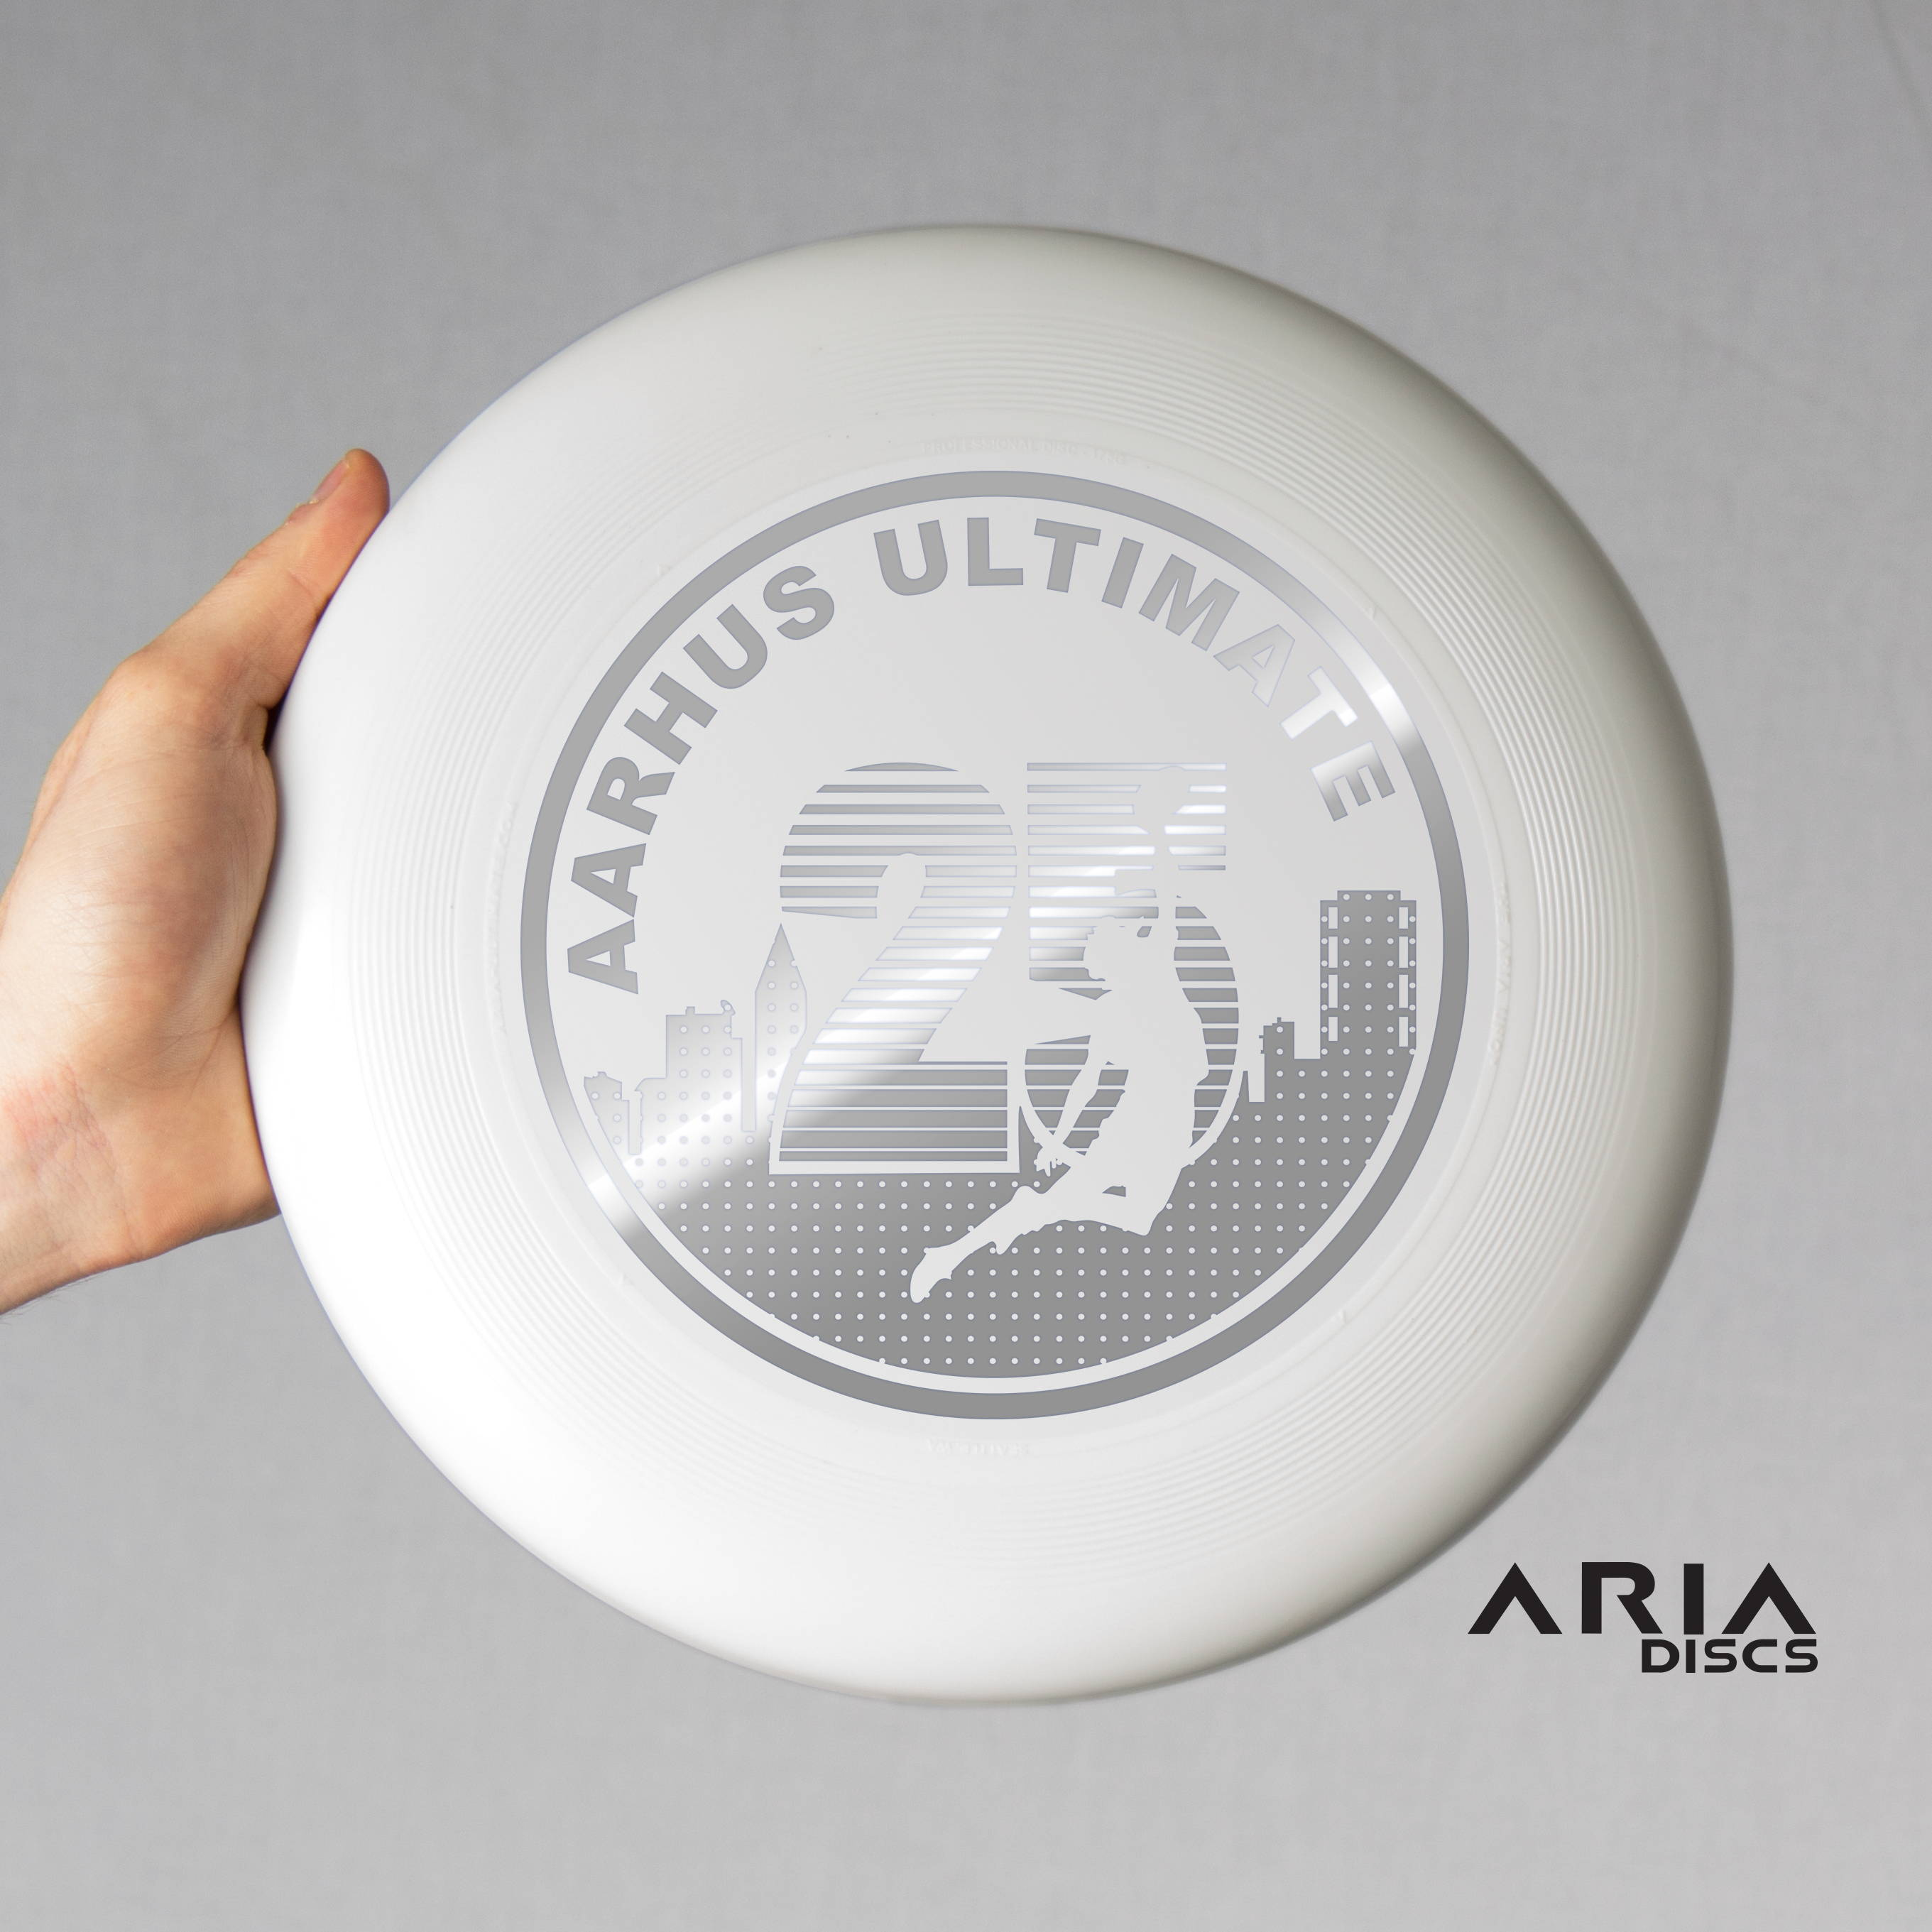 ARIA professional official ultimate flying disc for the sport commonly known as 'ultimate frisbee'